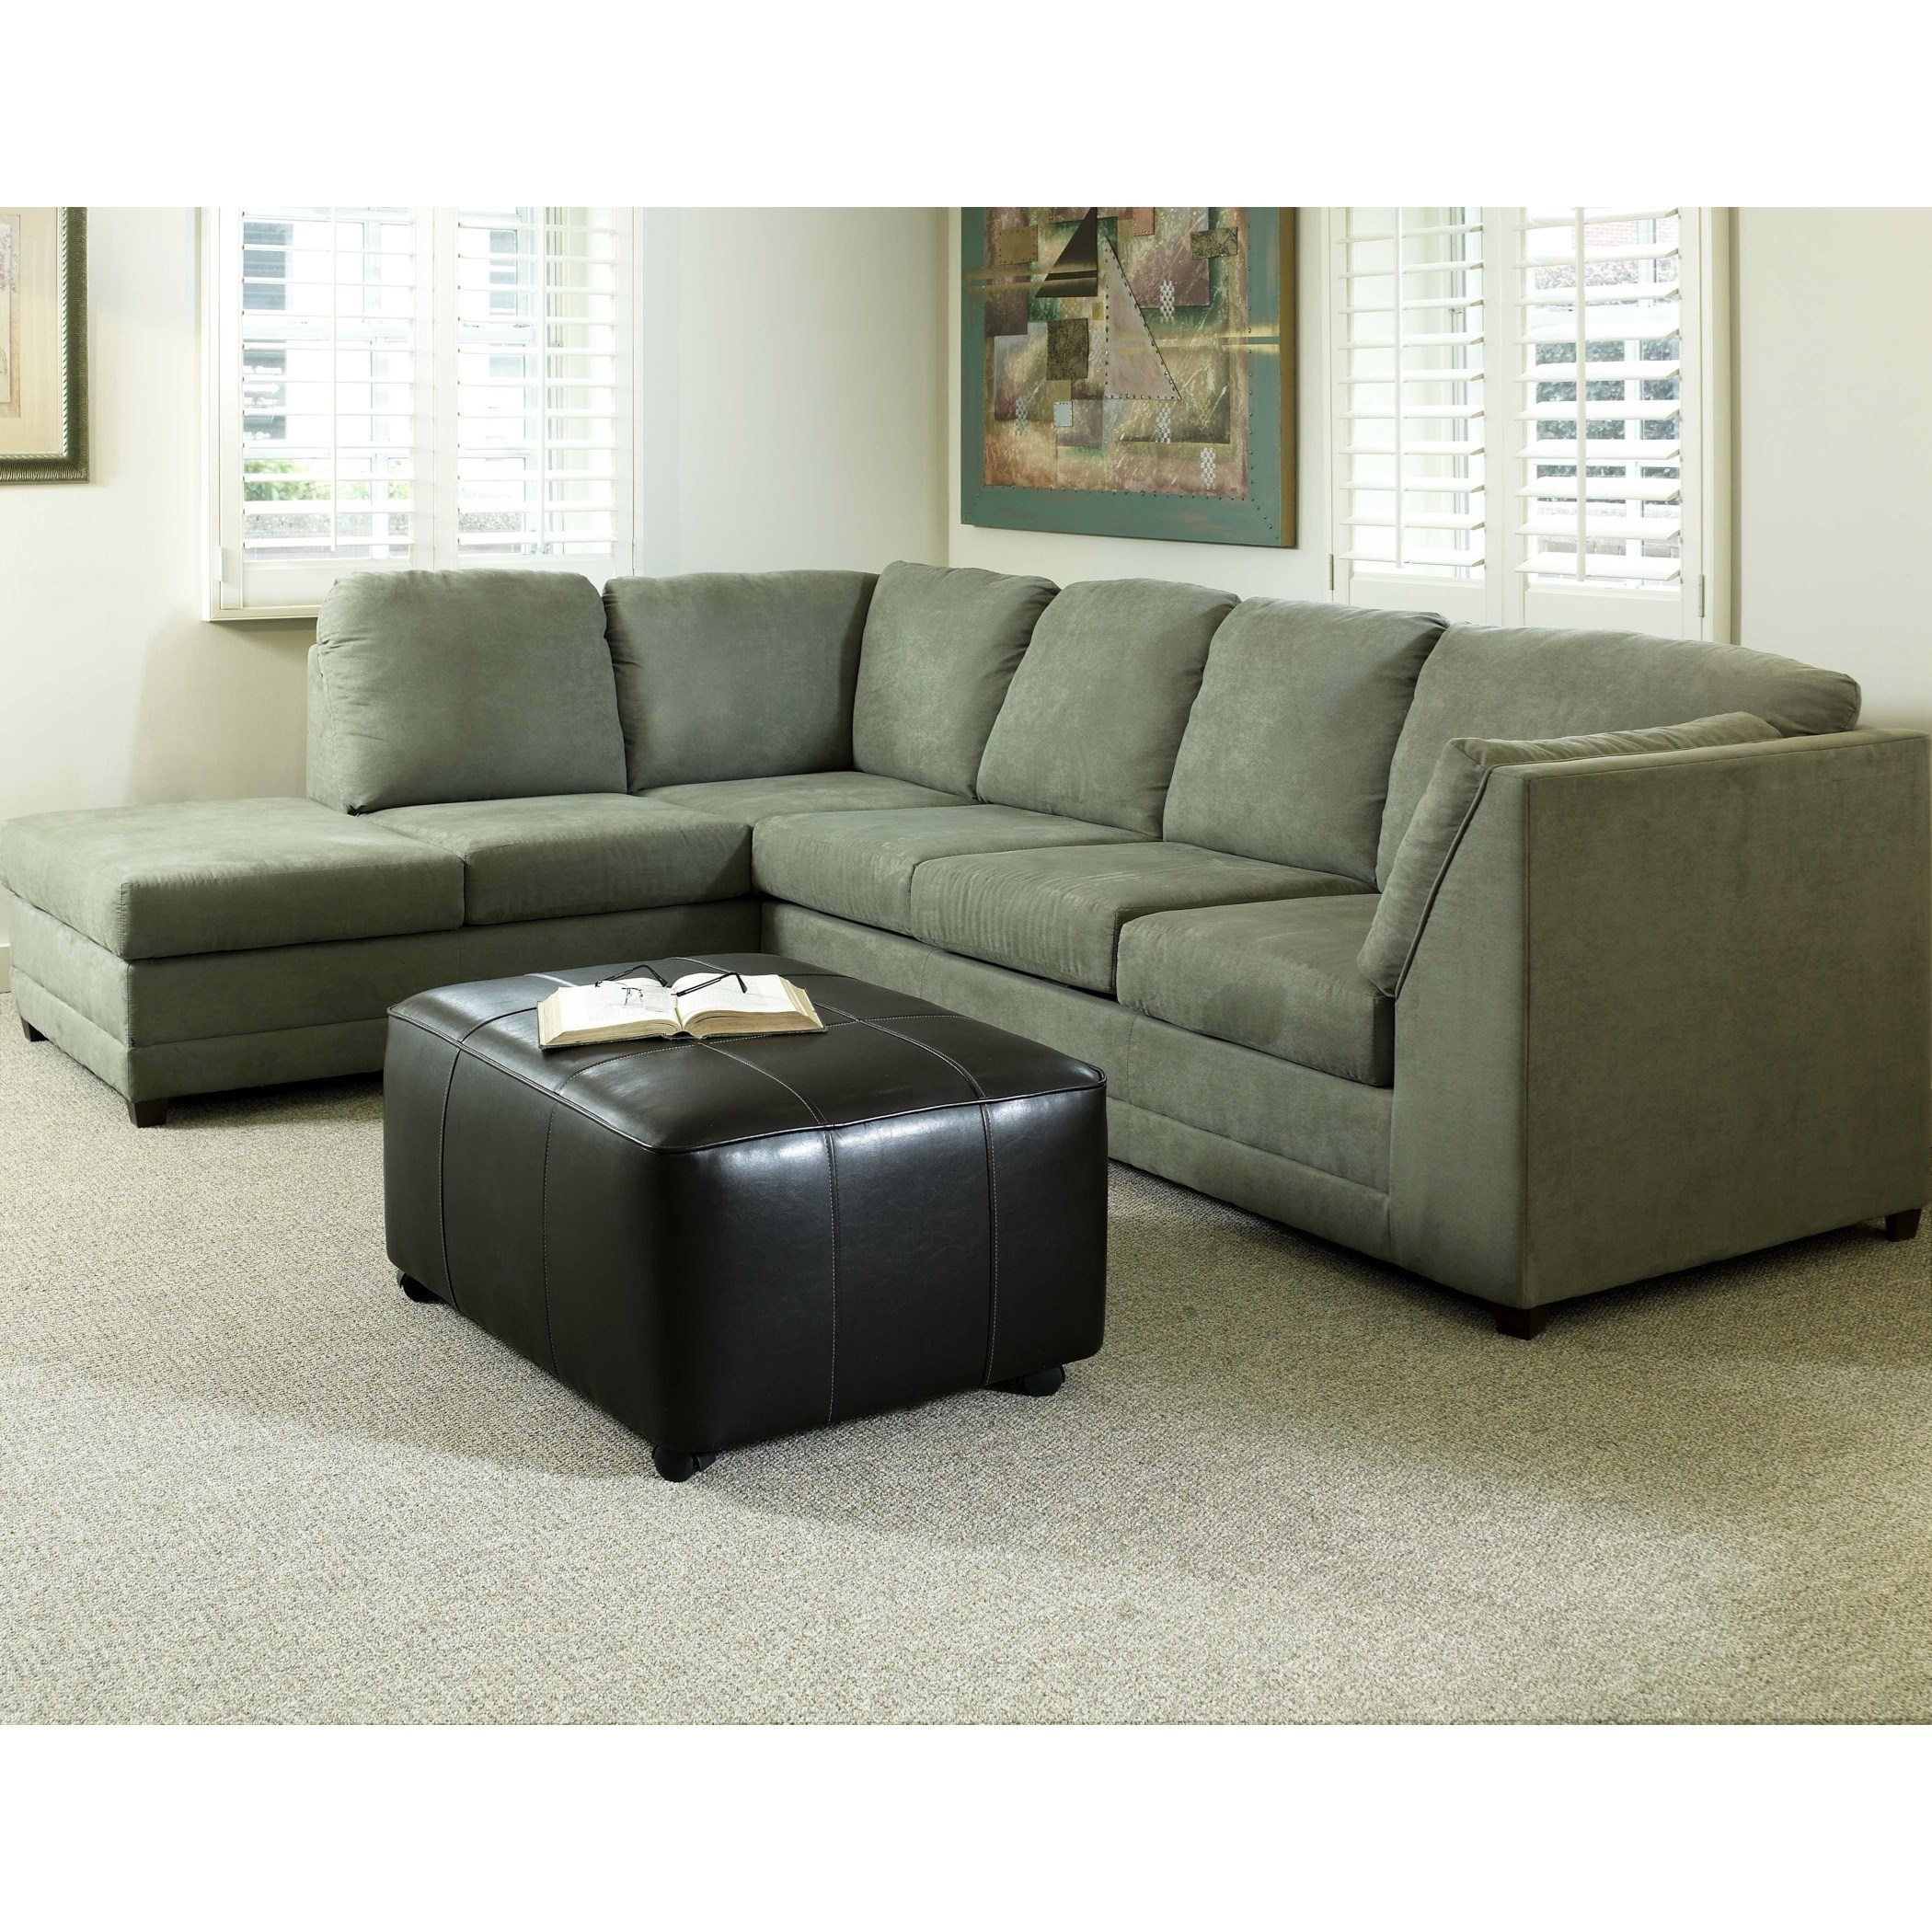 8200 Casual Sectional Sofa With Left Facing Chaise By Serta Upholstery By  Hughes Furniture